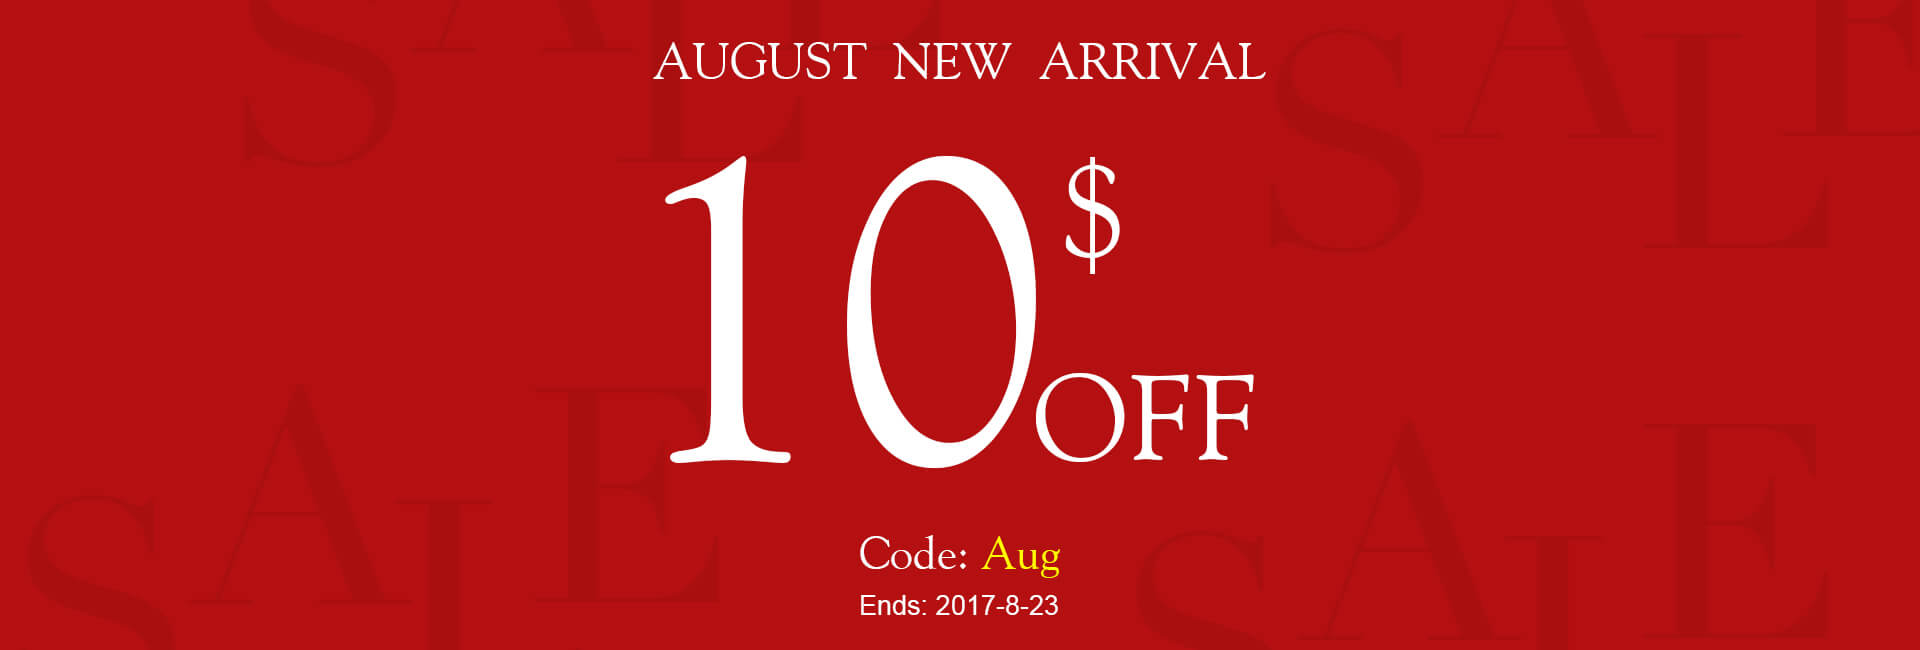 August new arrival